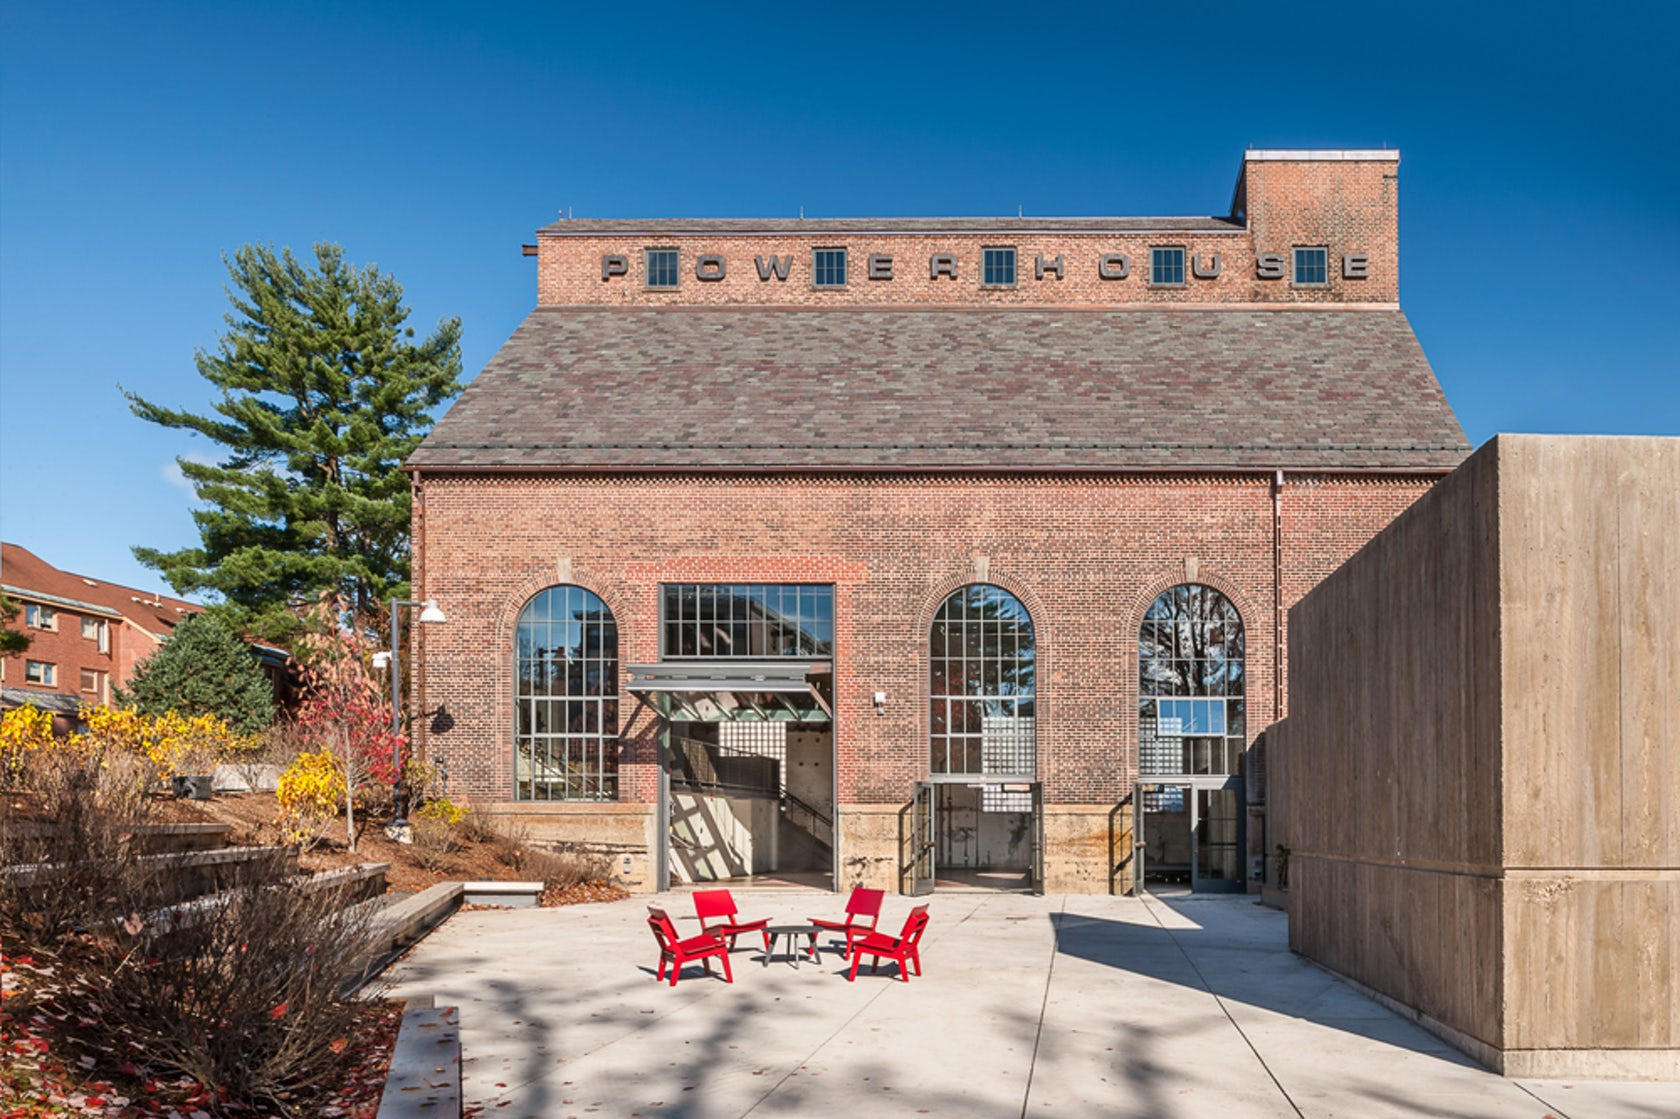 Amherst college powerhouse student event space architizer for College street motors amherst ma